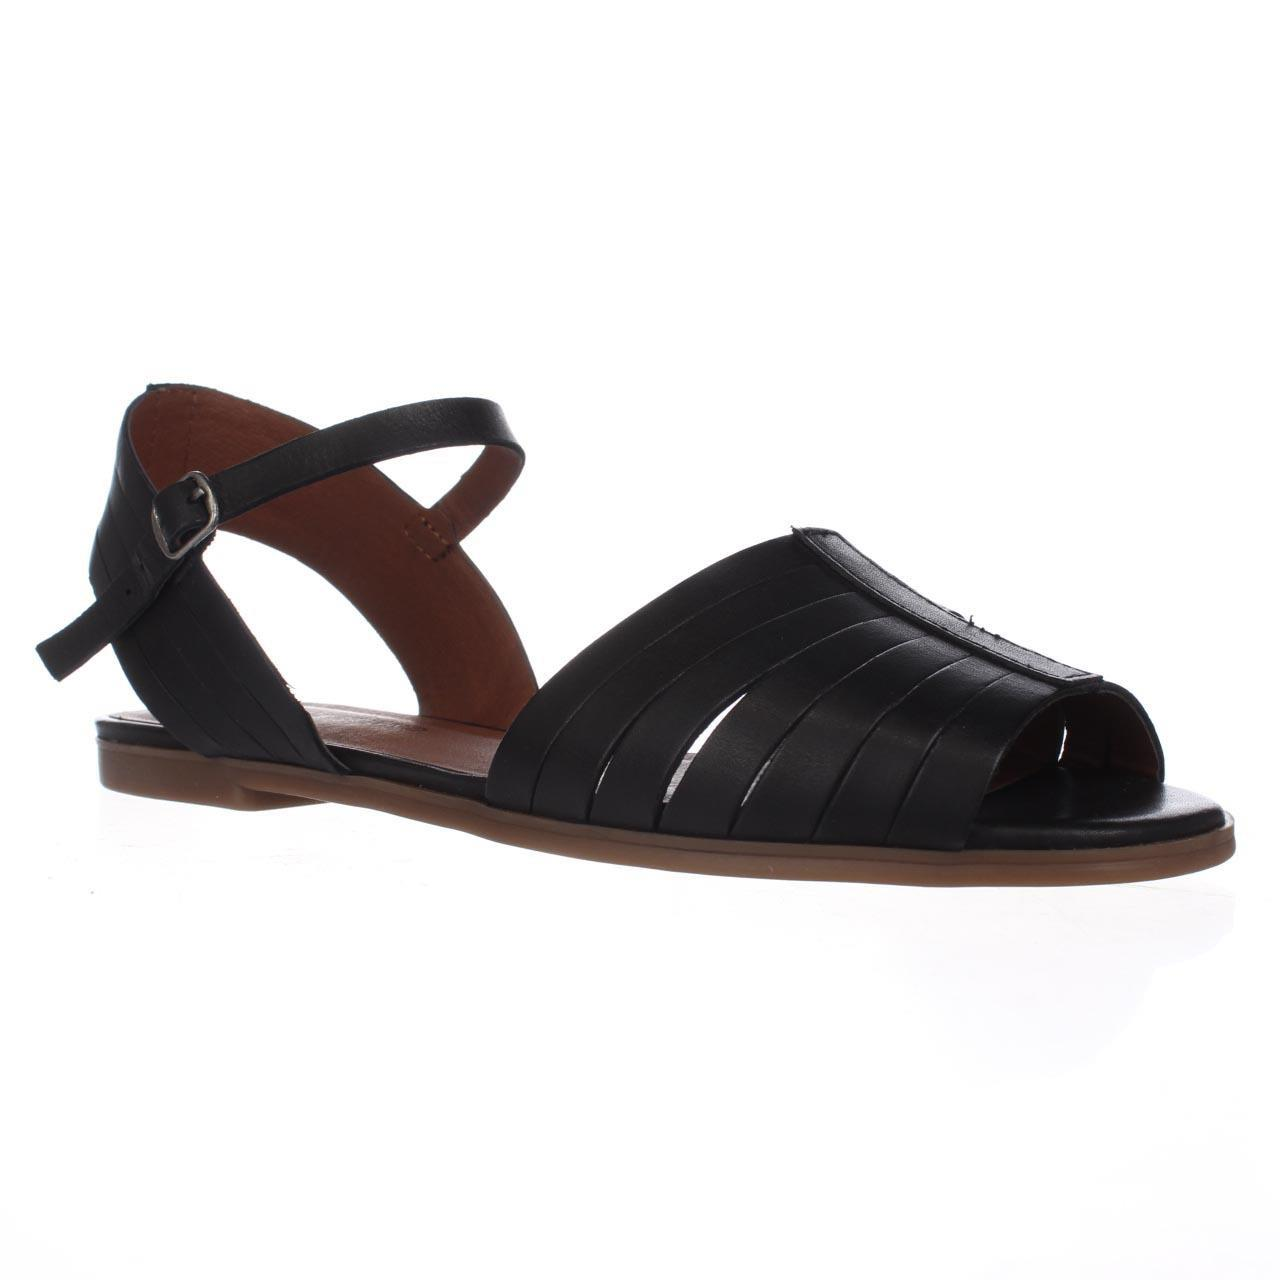 bd90e157f3c06e Lyst - Lucky Brand Channing Flat Peep Toe Sandals - Black in Black